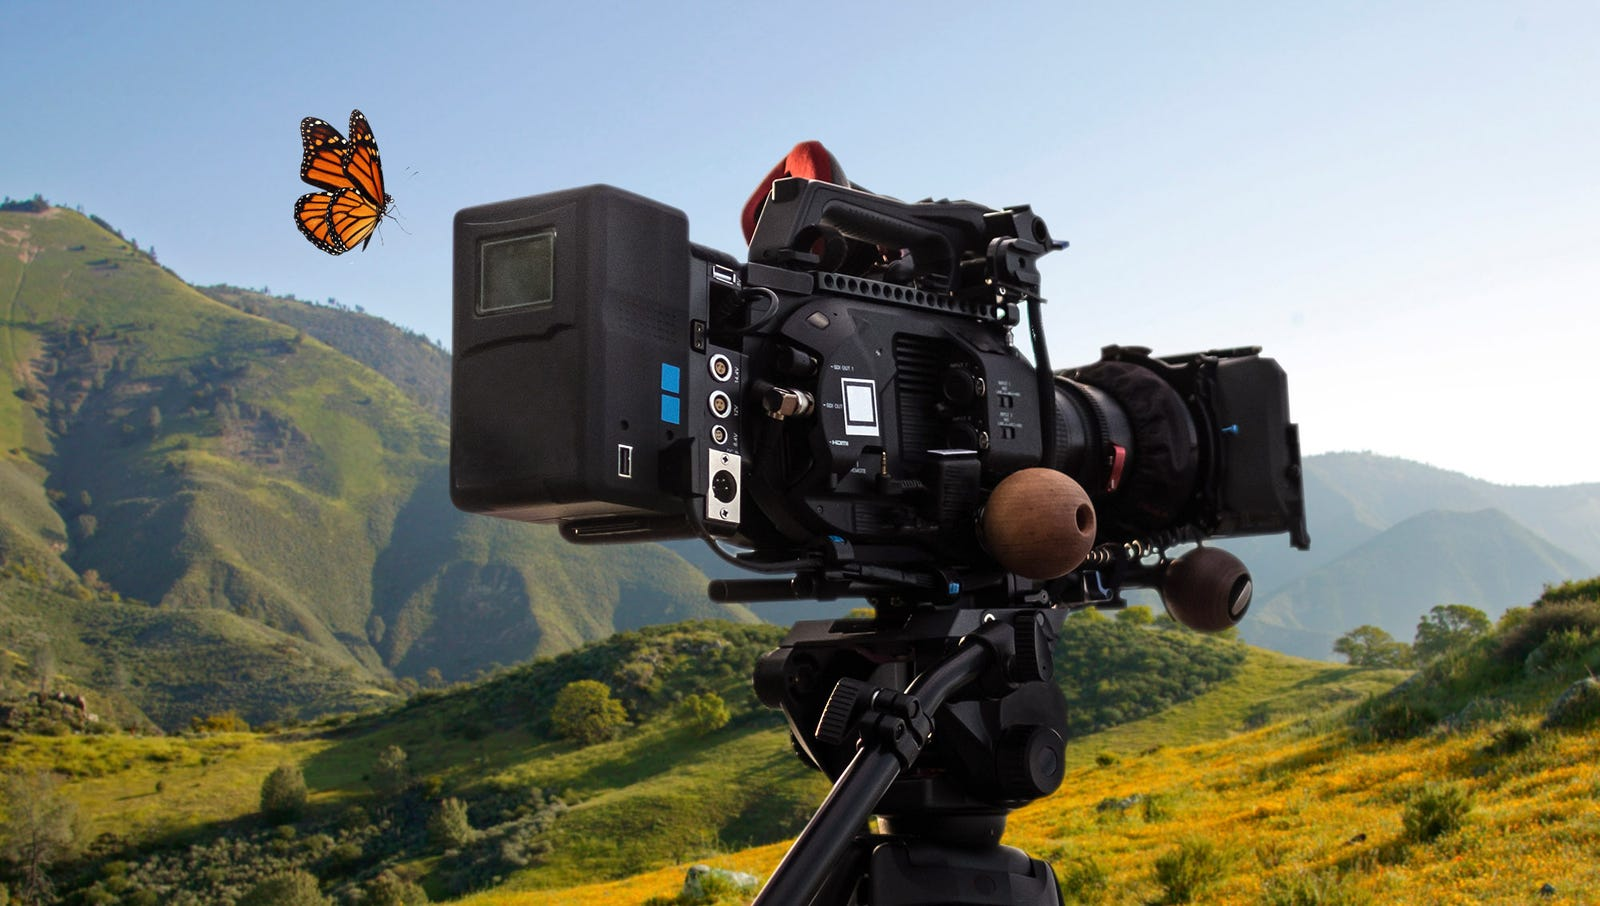 Monarch Butterfly Makes Directorial Debut On 'Nature' Episode